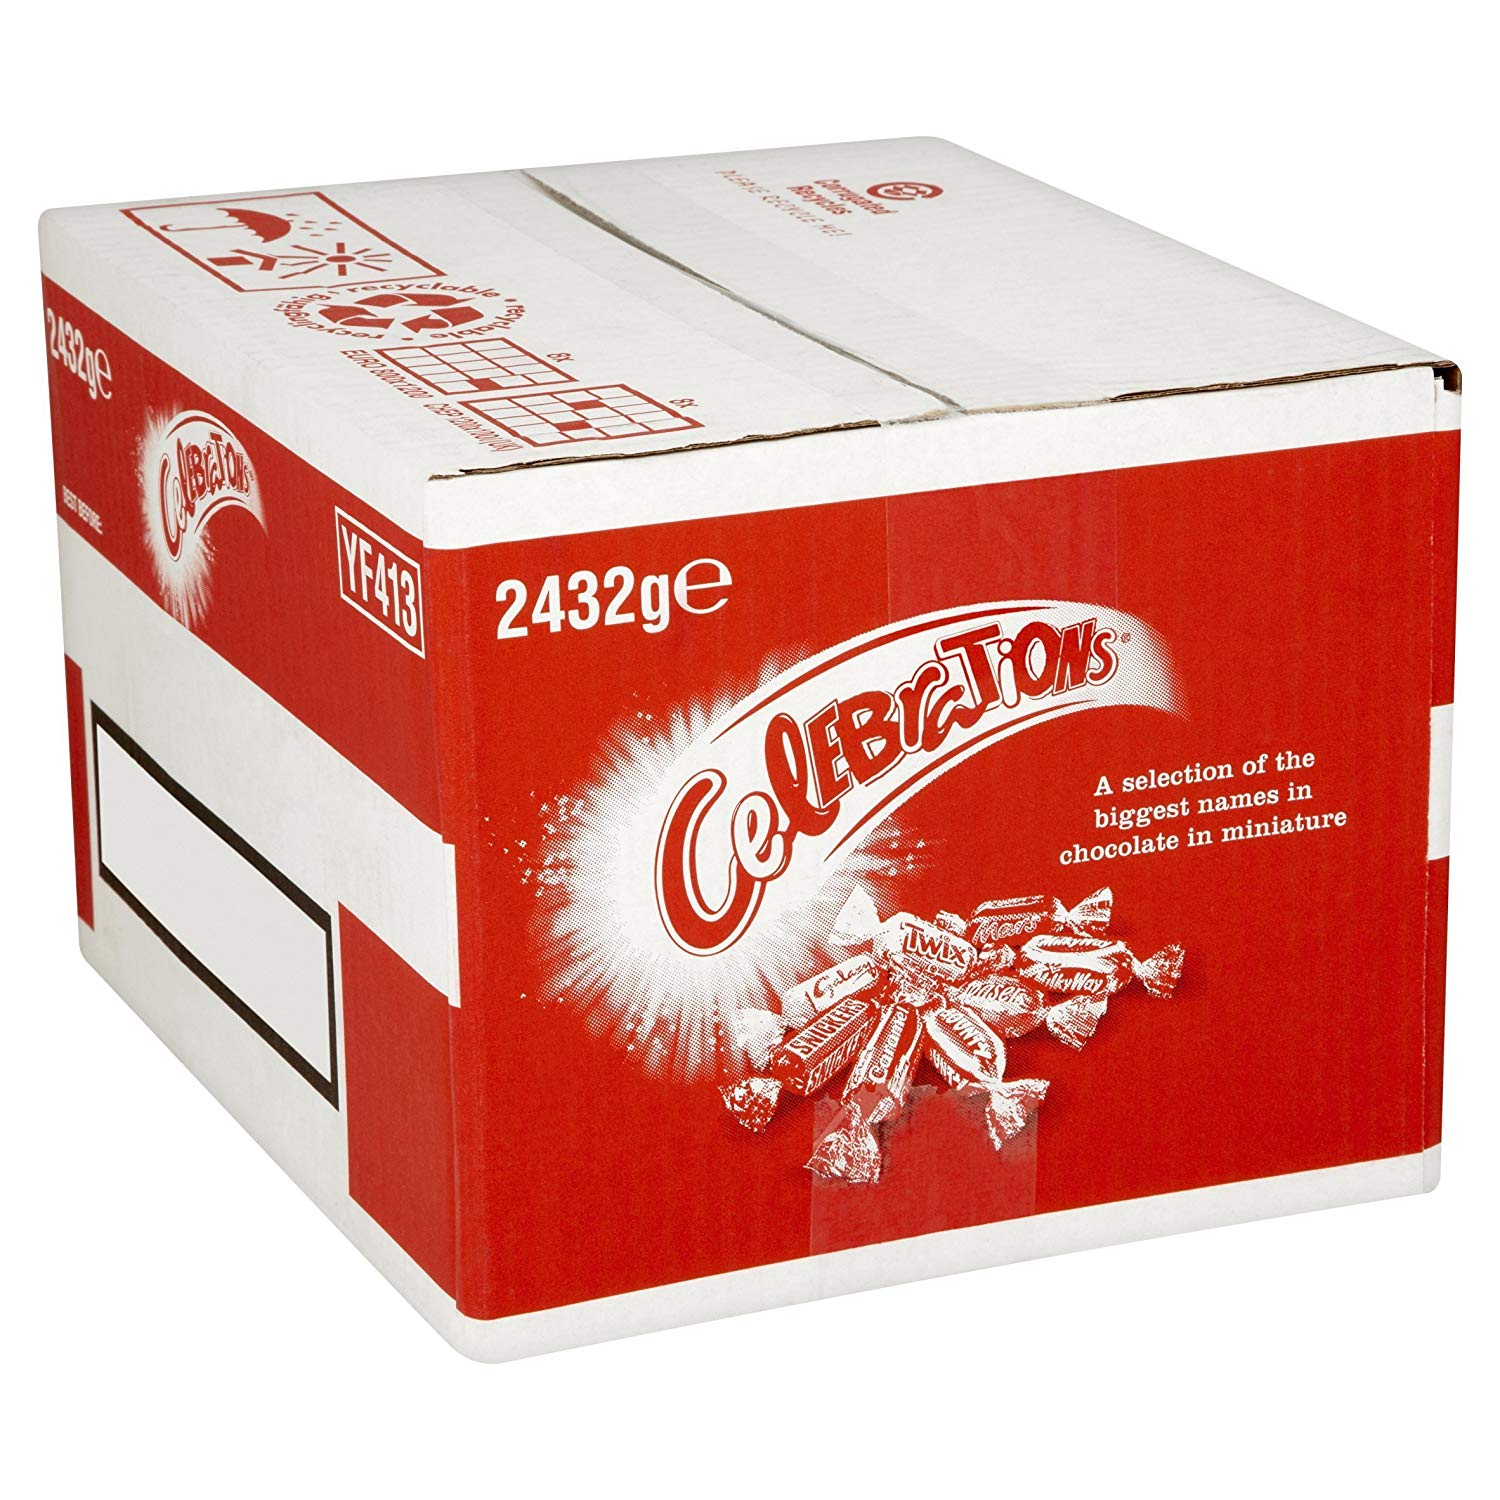 Celebrations Chocolate Bulk Case, 2.432 kg, £17.59